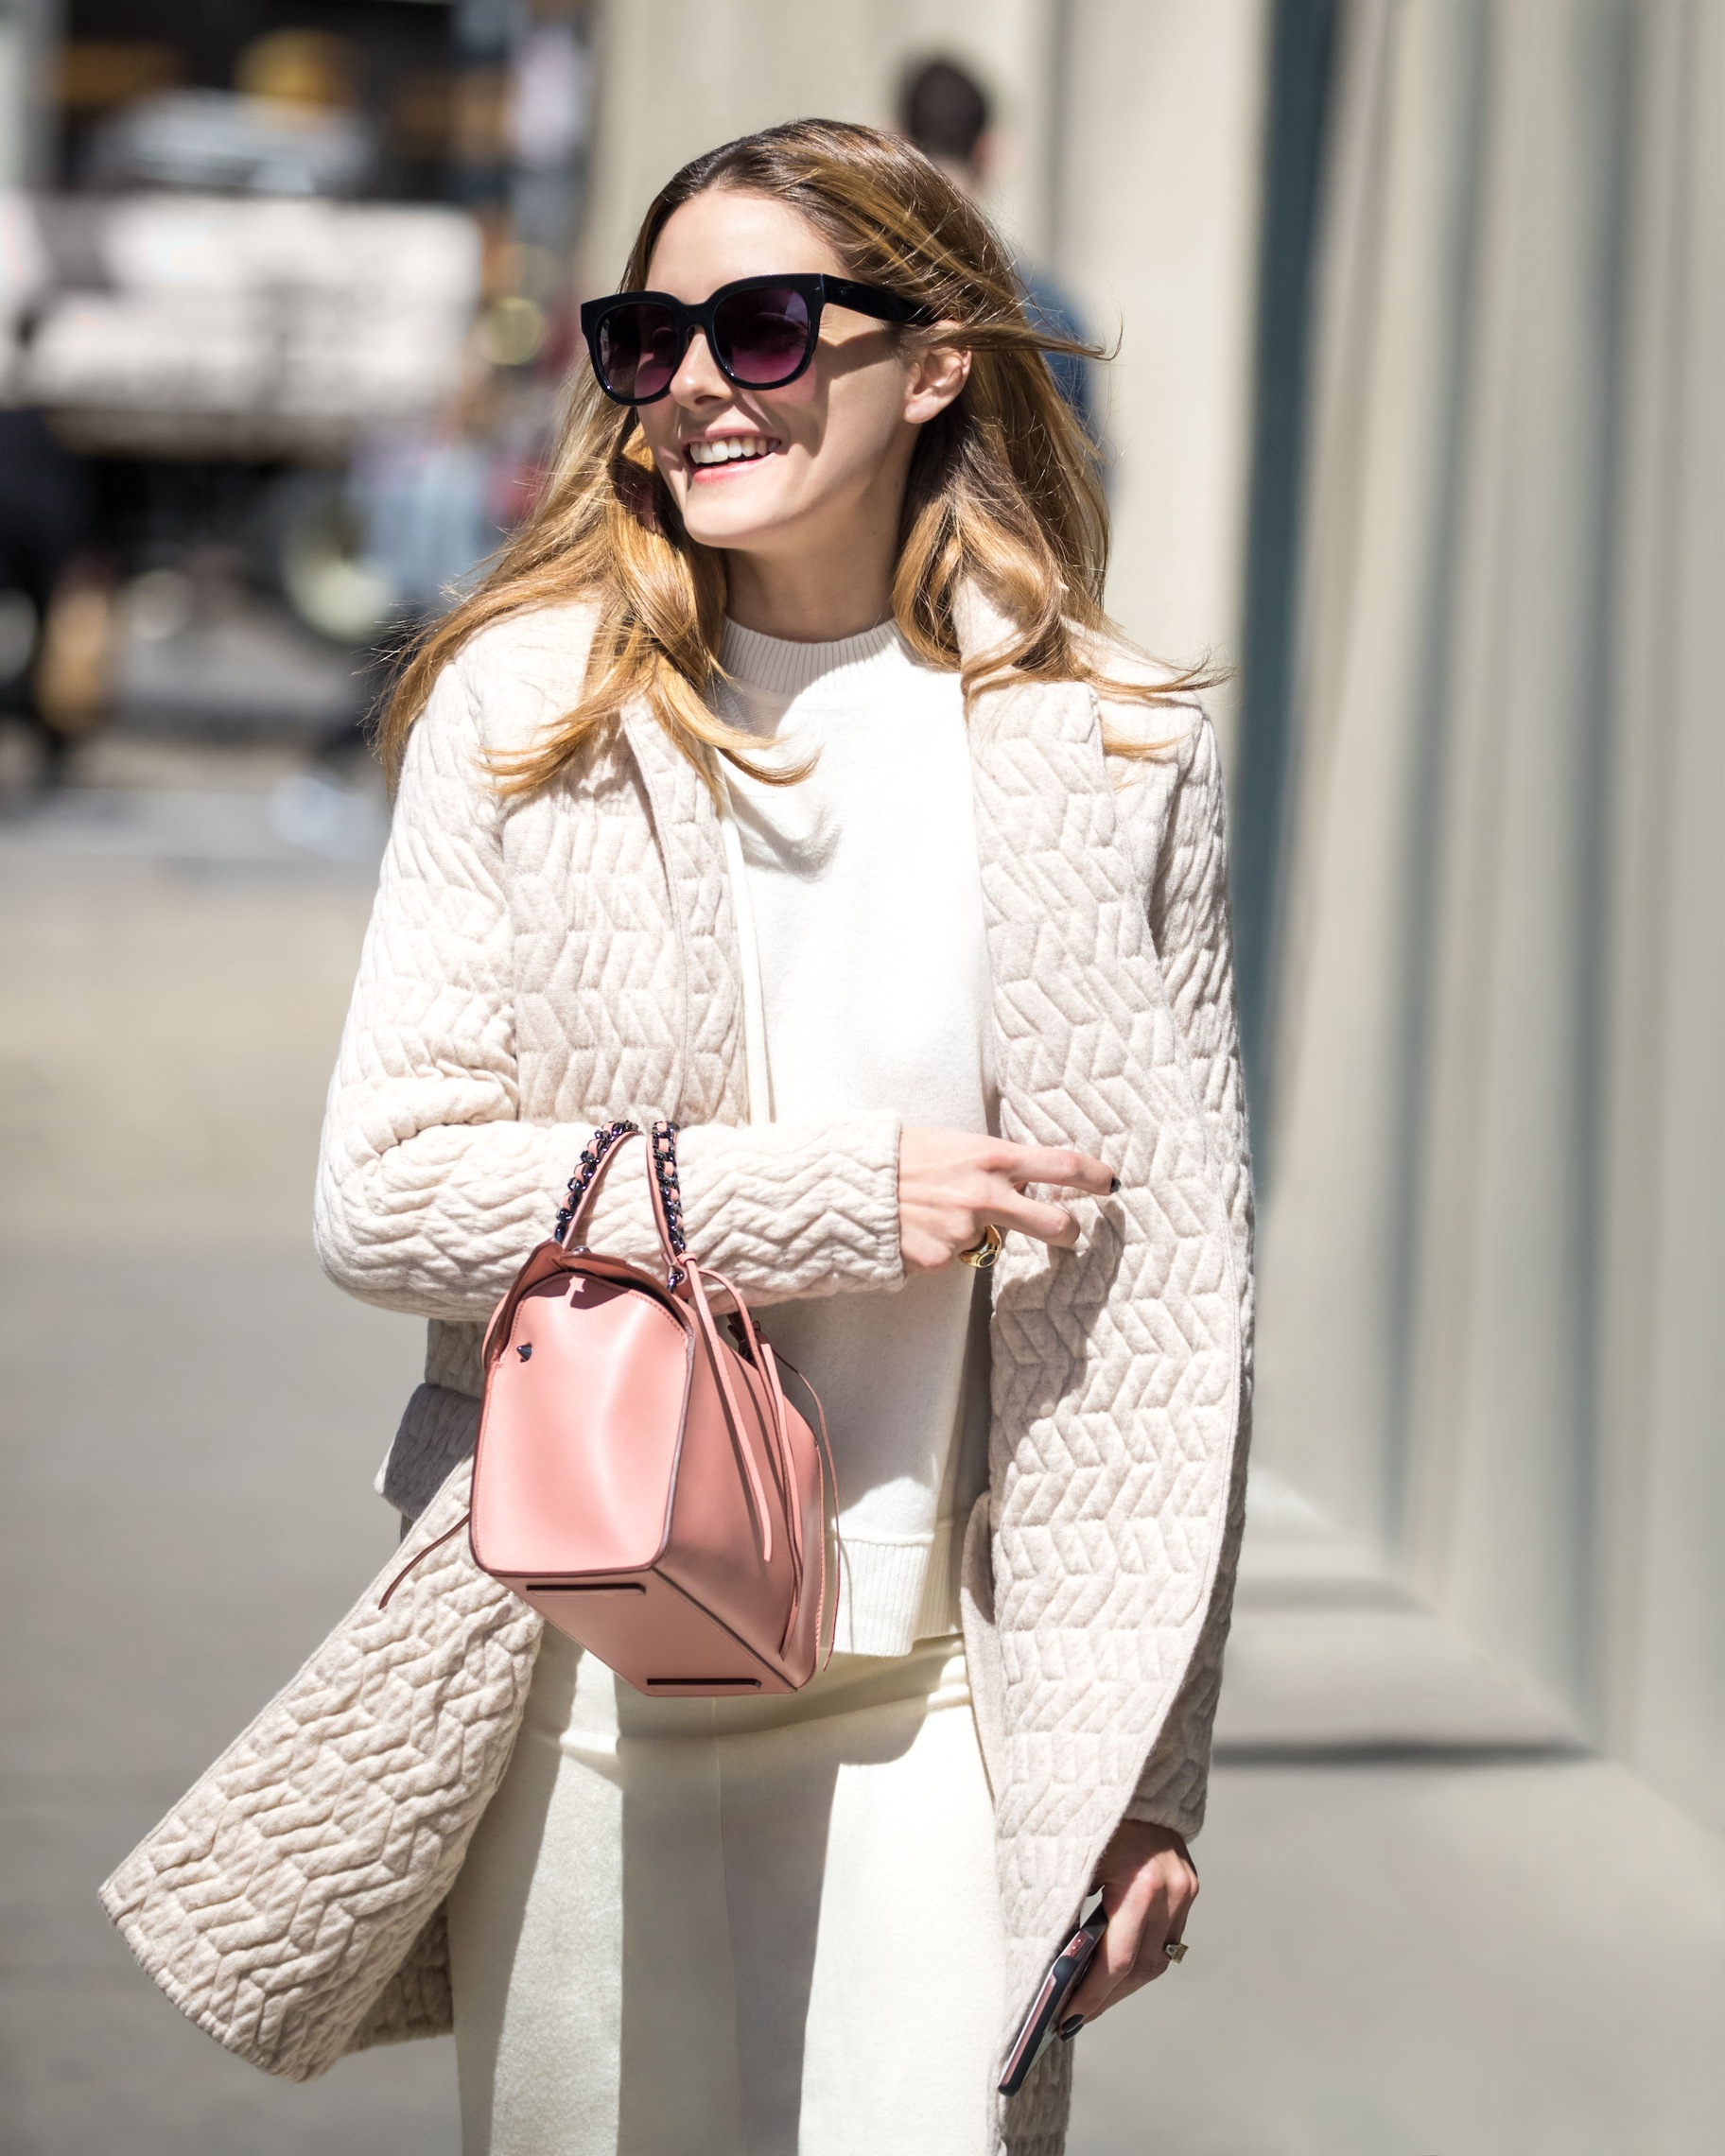 EXCLUSIVE: Olivia Palermo is enjoying a sunny day in Brooklyn, New York. Pictured: Olivia Palermo Ref: SPL1474735 100417 EXCLUSIVE Picture by: S Splash News and Pictures Los Angeles:310-821-2666 New York:212-619-2666 London:870-934-2666 photodesk@splashnews.com